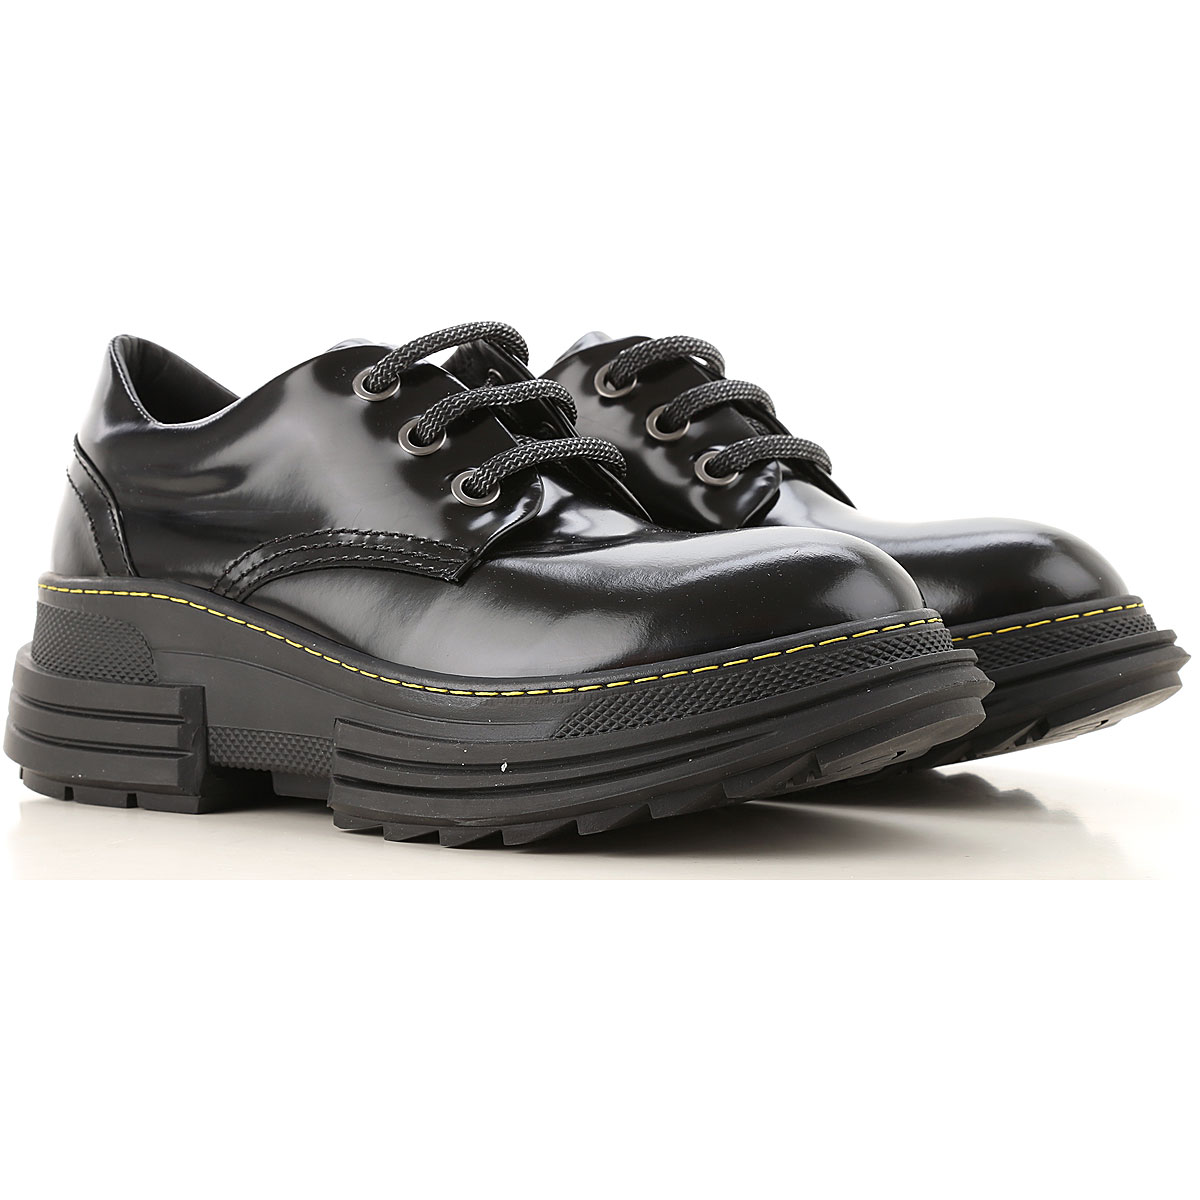 Beyond Womens Shoes, Black, Patent Leather, 2019, 7 8 9